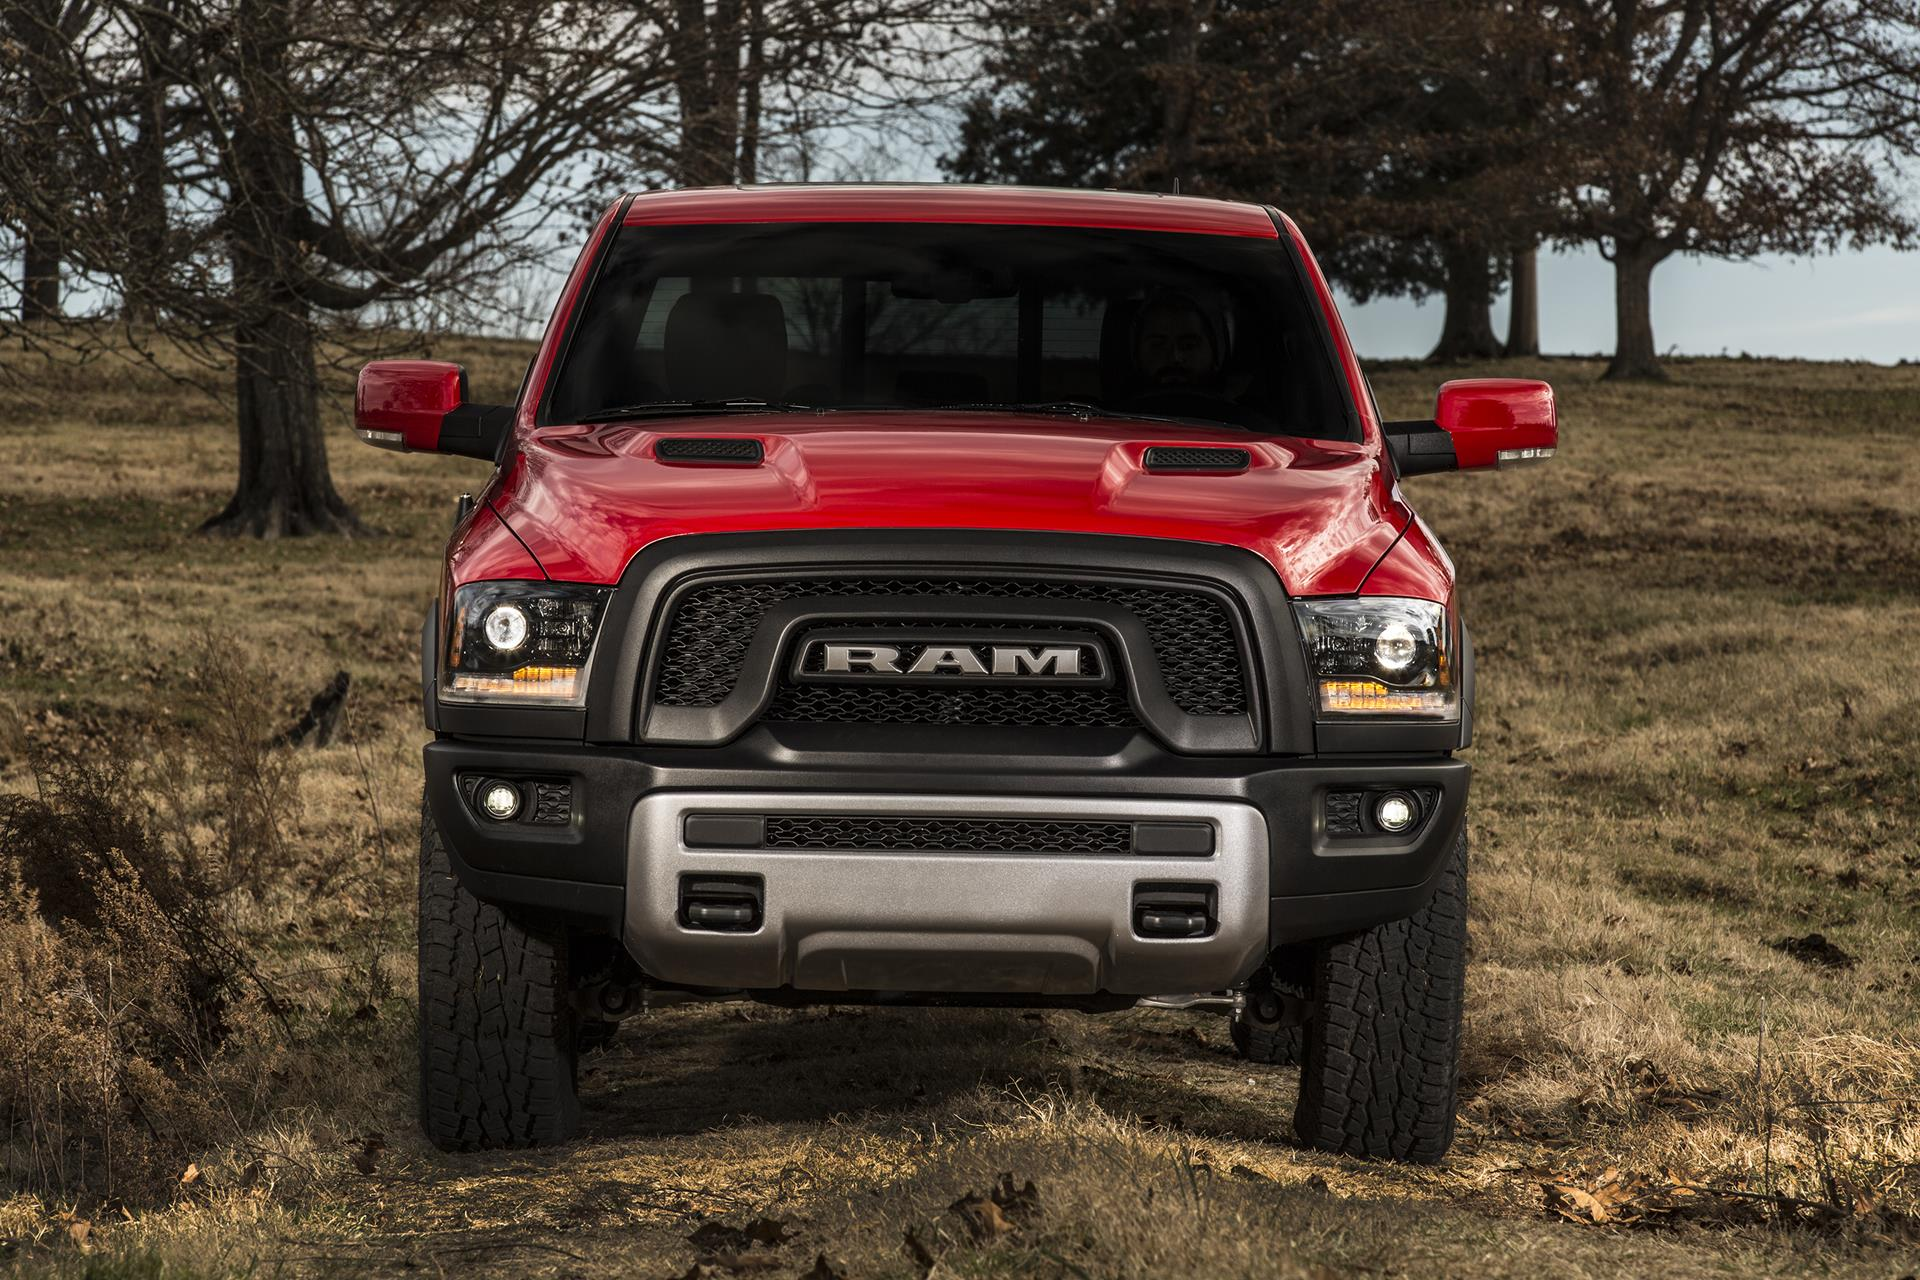 2015 Ram Rebel News And Information Conceptcarz Com